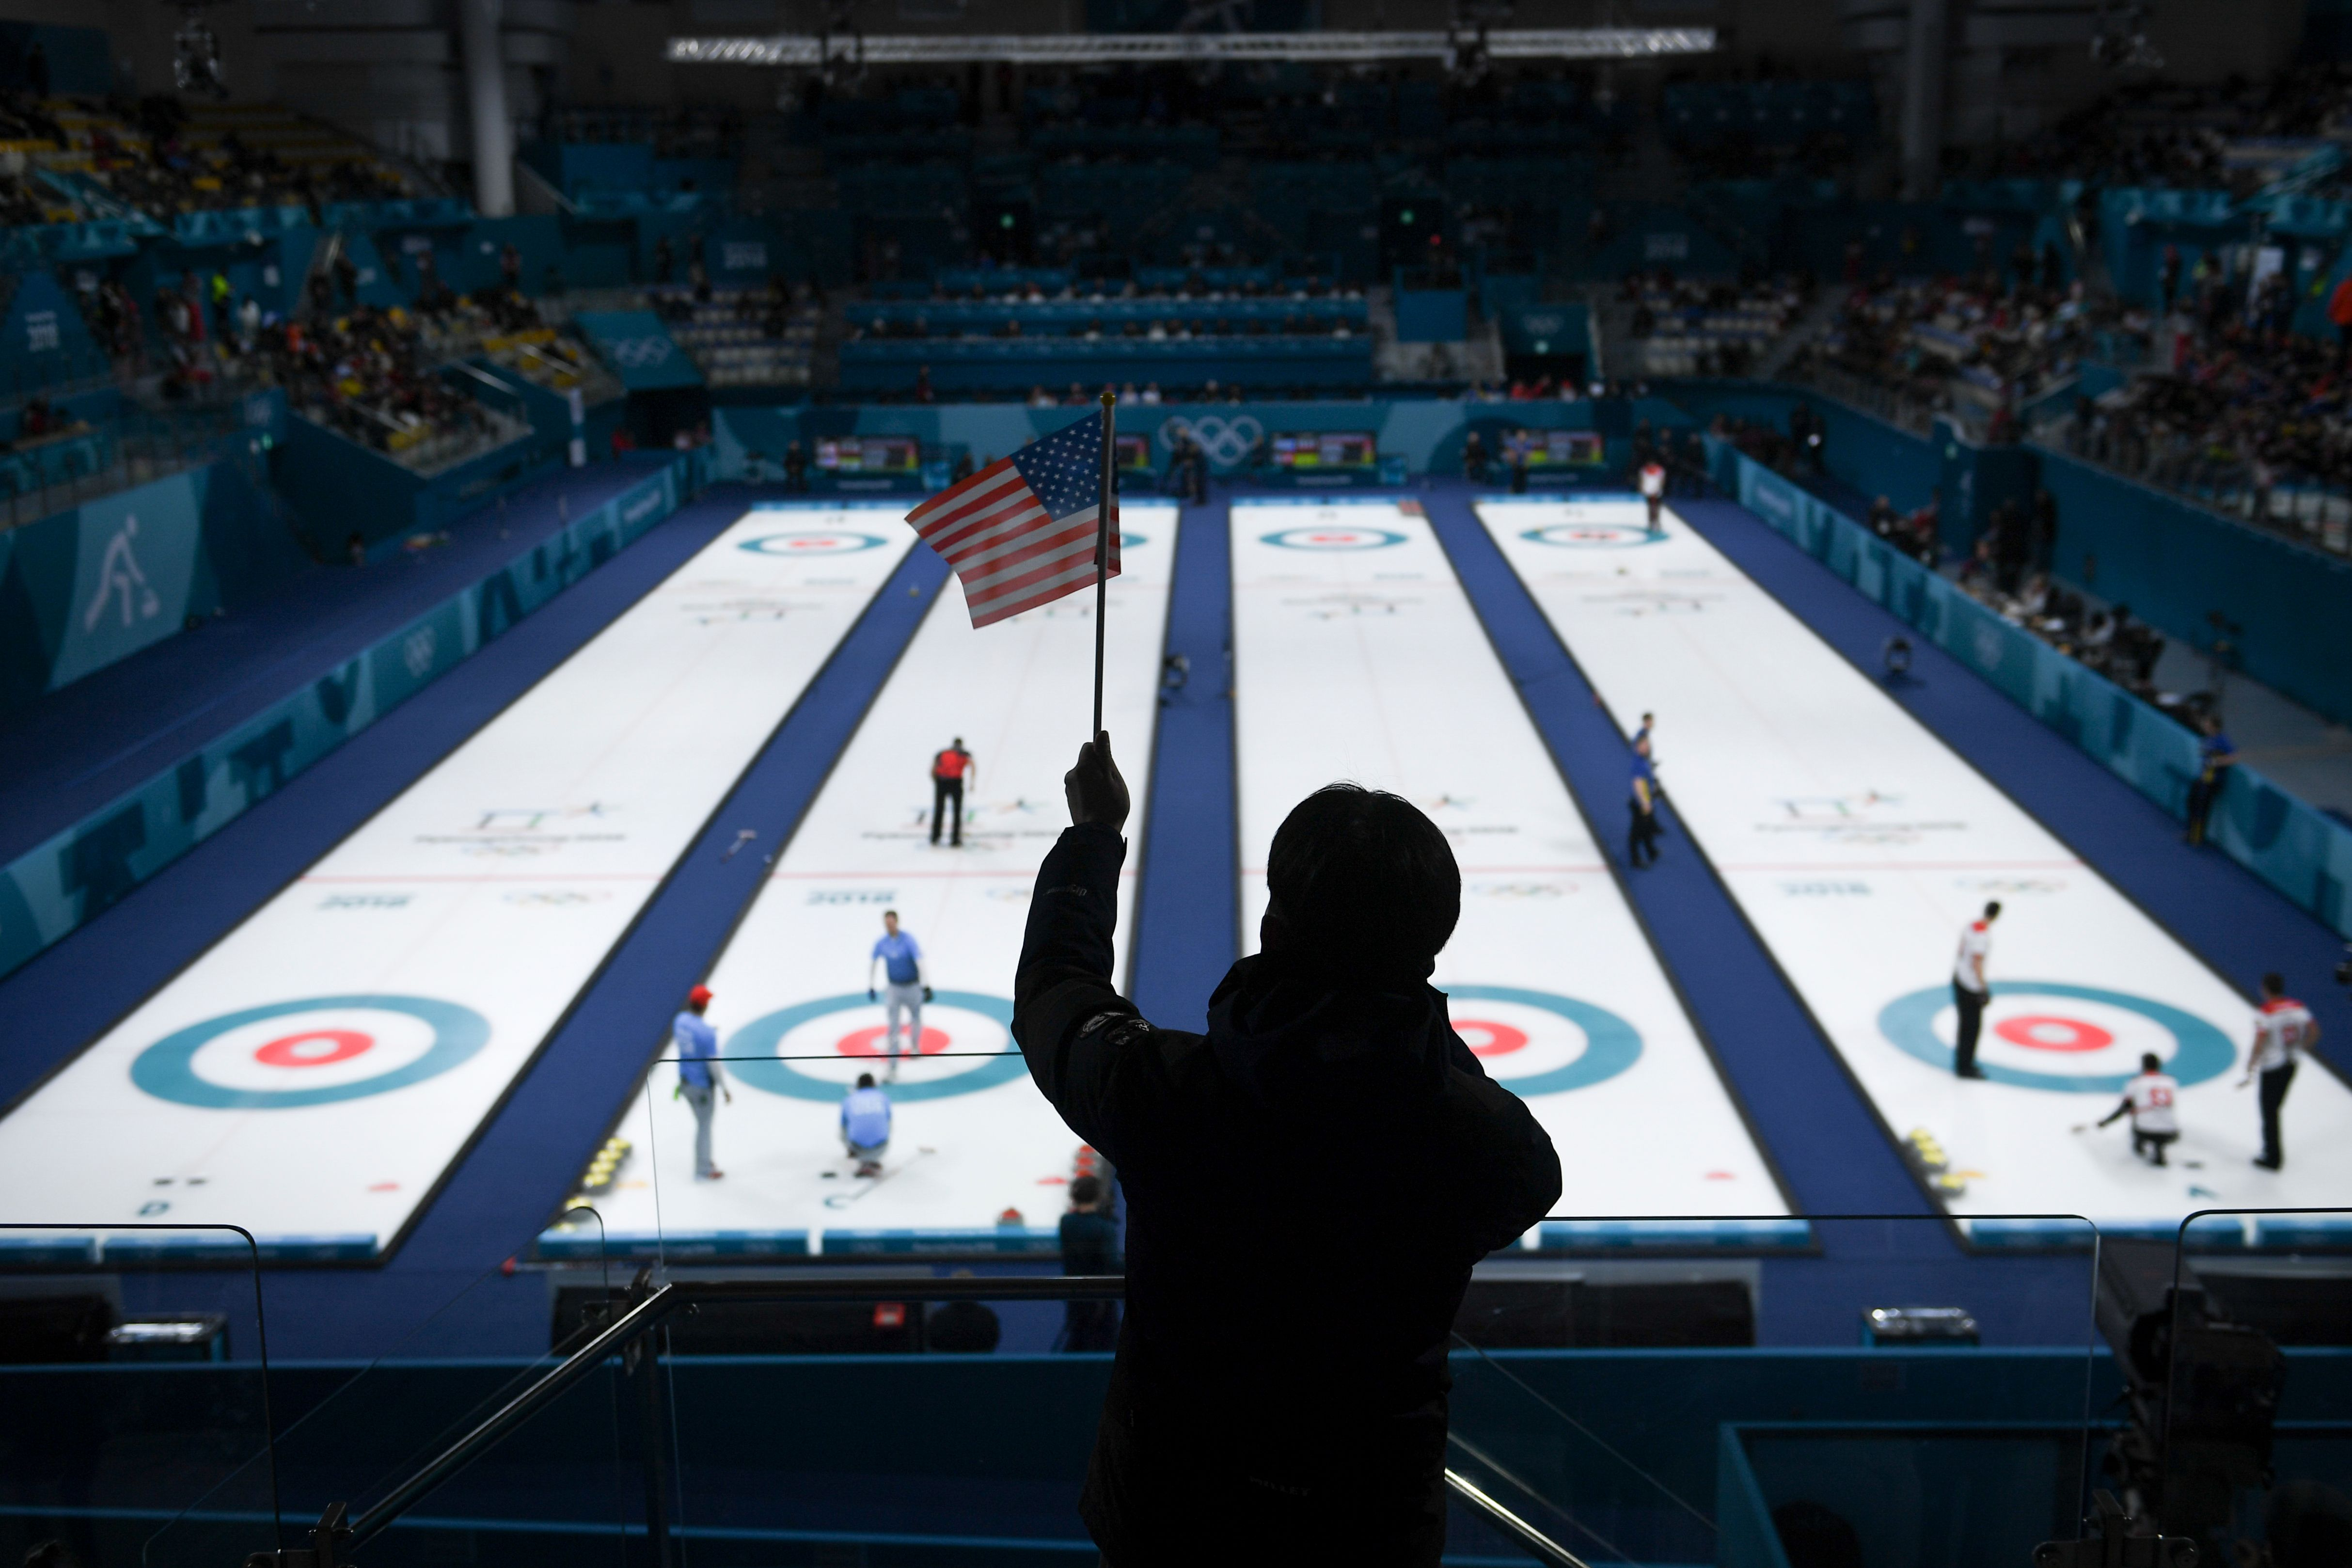 A man waves an American flag during the curling men's semi-final game between Canada and USA during the Pyeongchang 2018 Winter Olympic Games at the Gangneung Curling Centre in Gangneung on February 22, 2018.